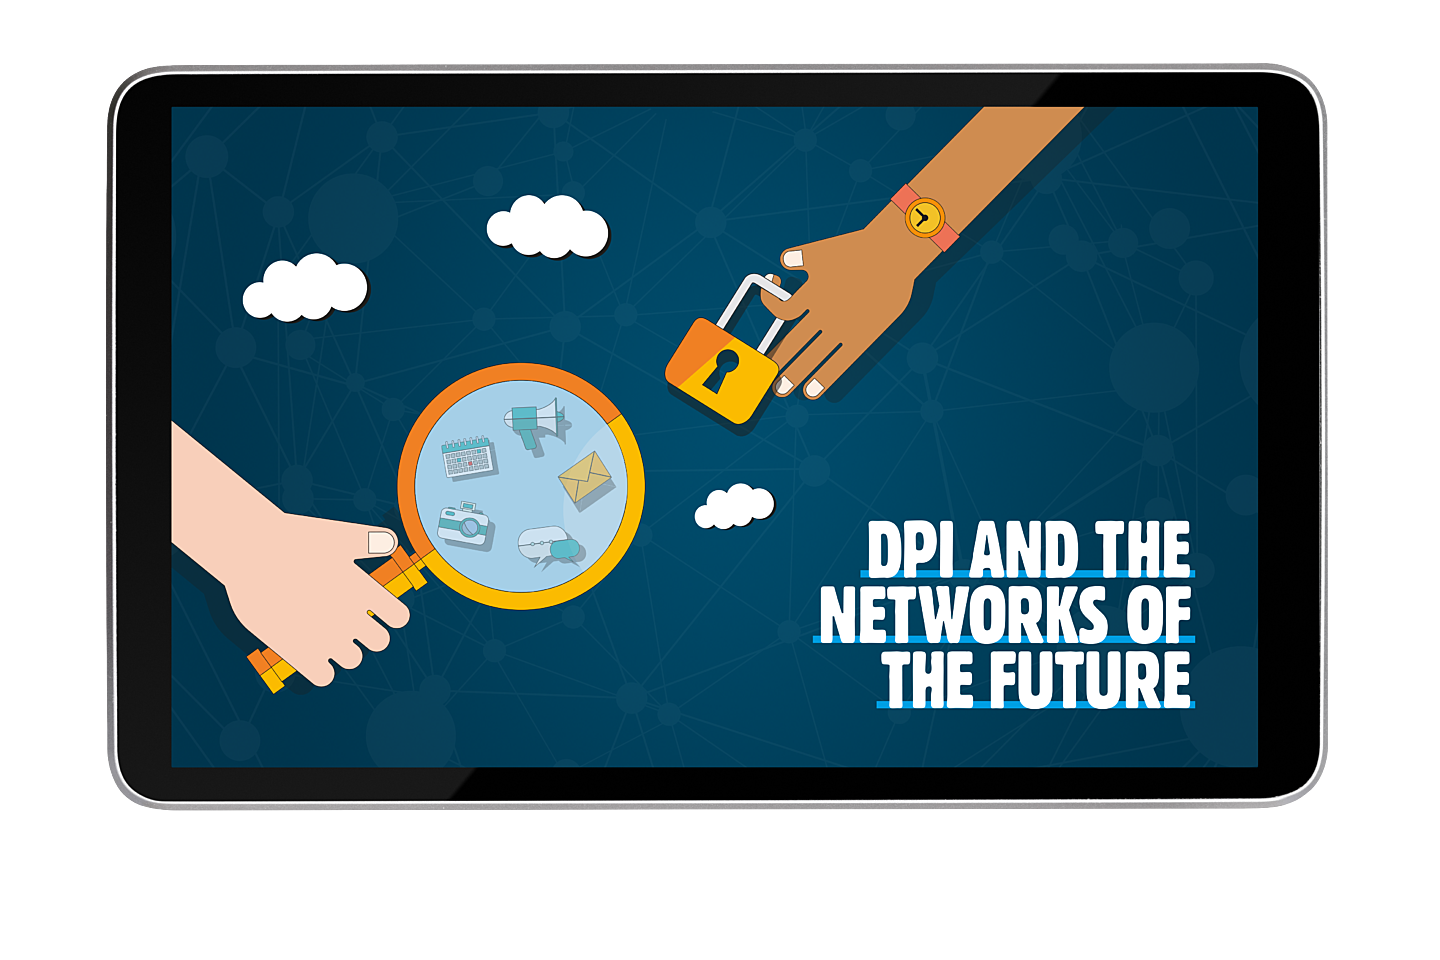 RS image resources ebook dpi and networks of the future